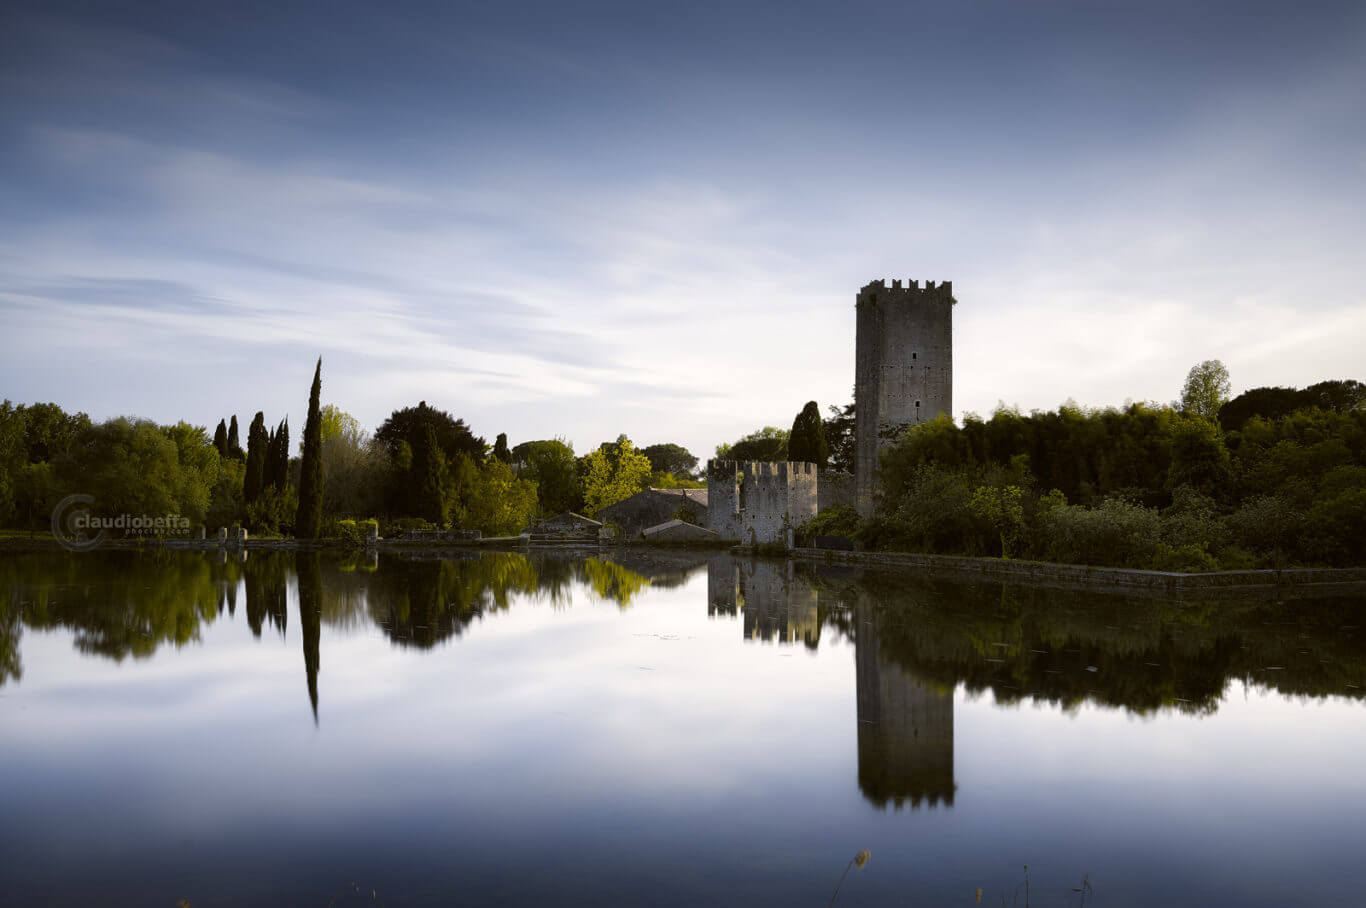 Garden of Ninfa, Garden, Ninfa, Mirror of lifeblood, Italy, Tower, Lake, Reflections, Nature, Spring, Travel, Travel Photography, Ancient, Romantic